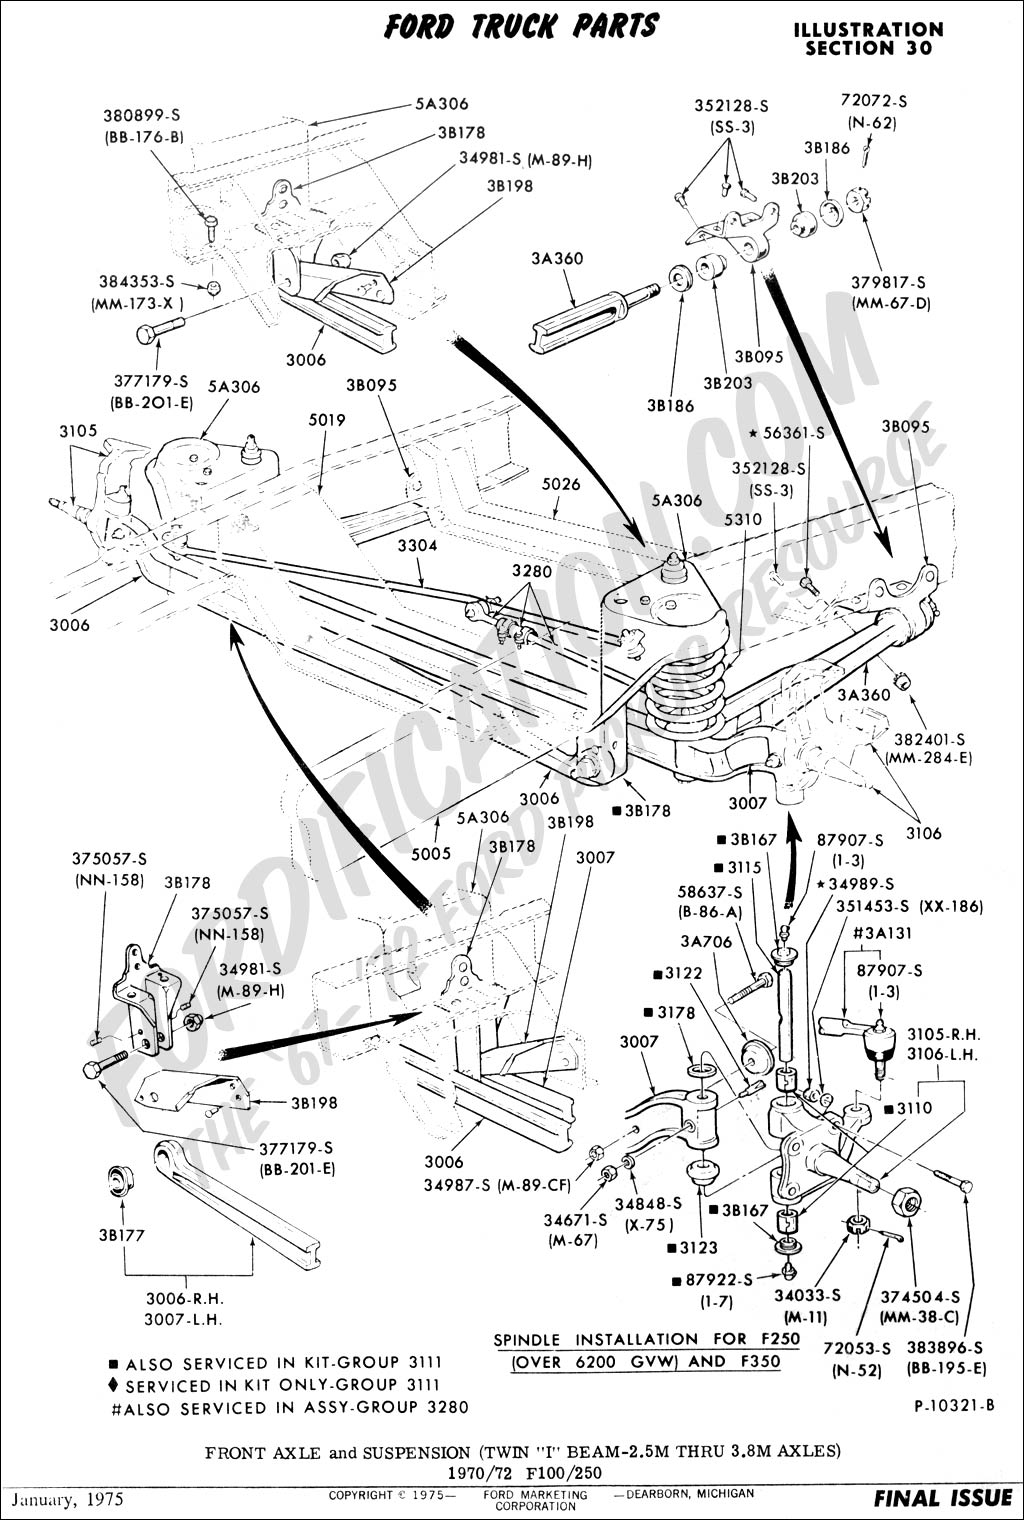 2000 Ford F350 Front Axle Diagram >> Ford Truck Technical Drawings and Schematics - Section A - Front/Rear Axle Assemblies and ...